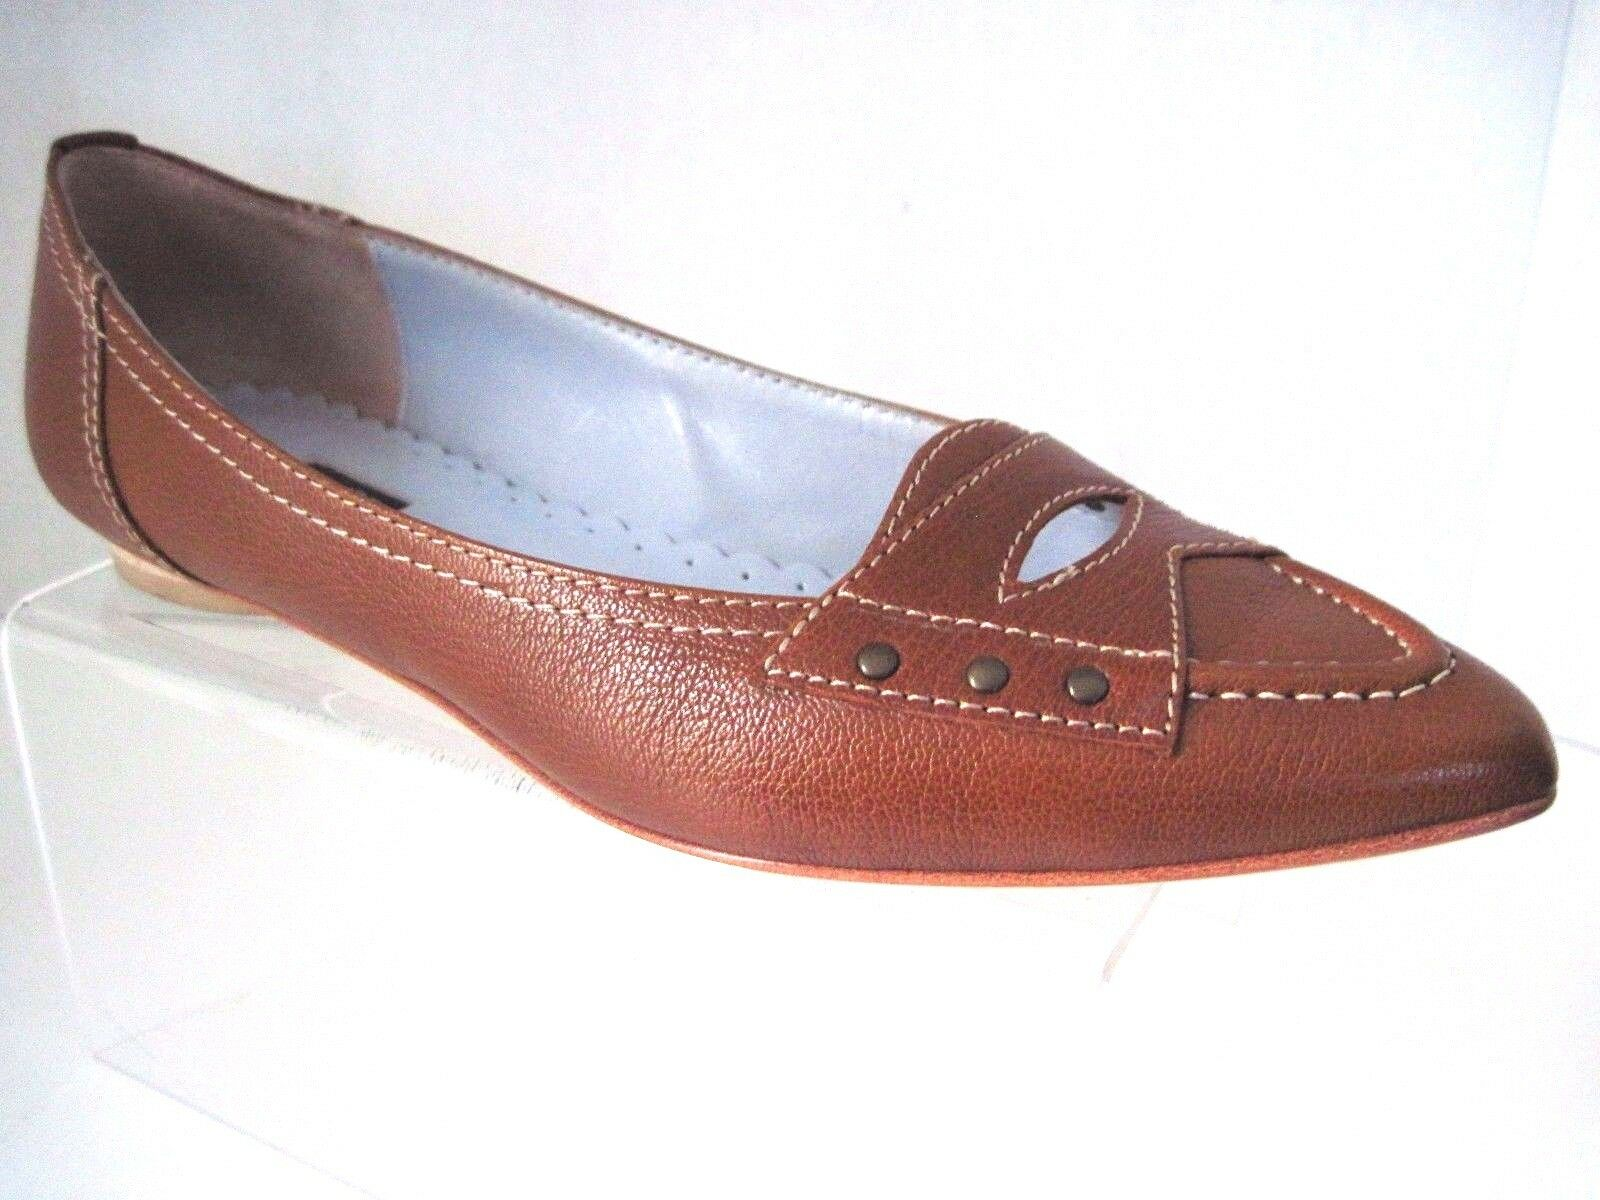 RAFE New York Brown Leather Cut Out Flat Loafer Size 37 1 2